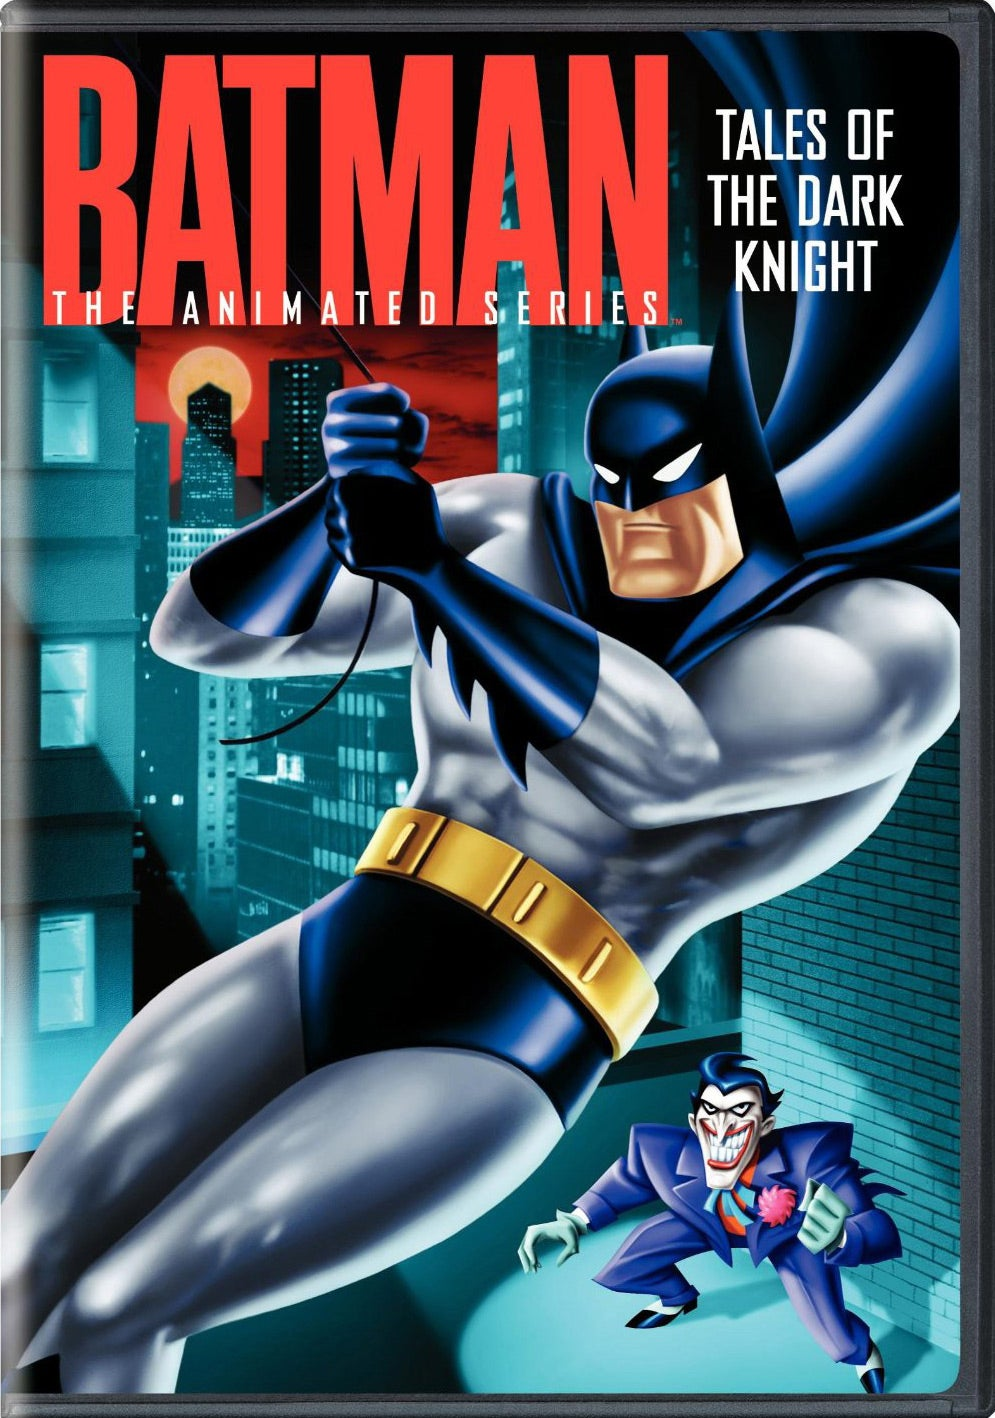 Batman the Animated Series: Tales of the Dark Knight (DVD)